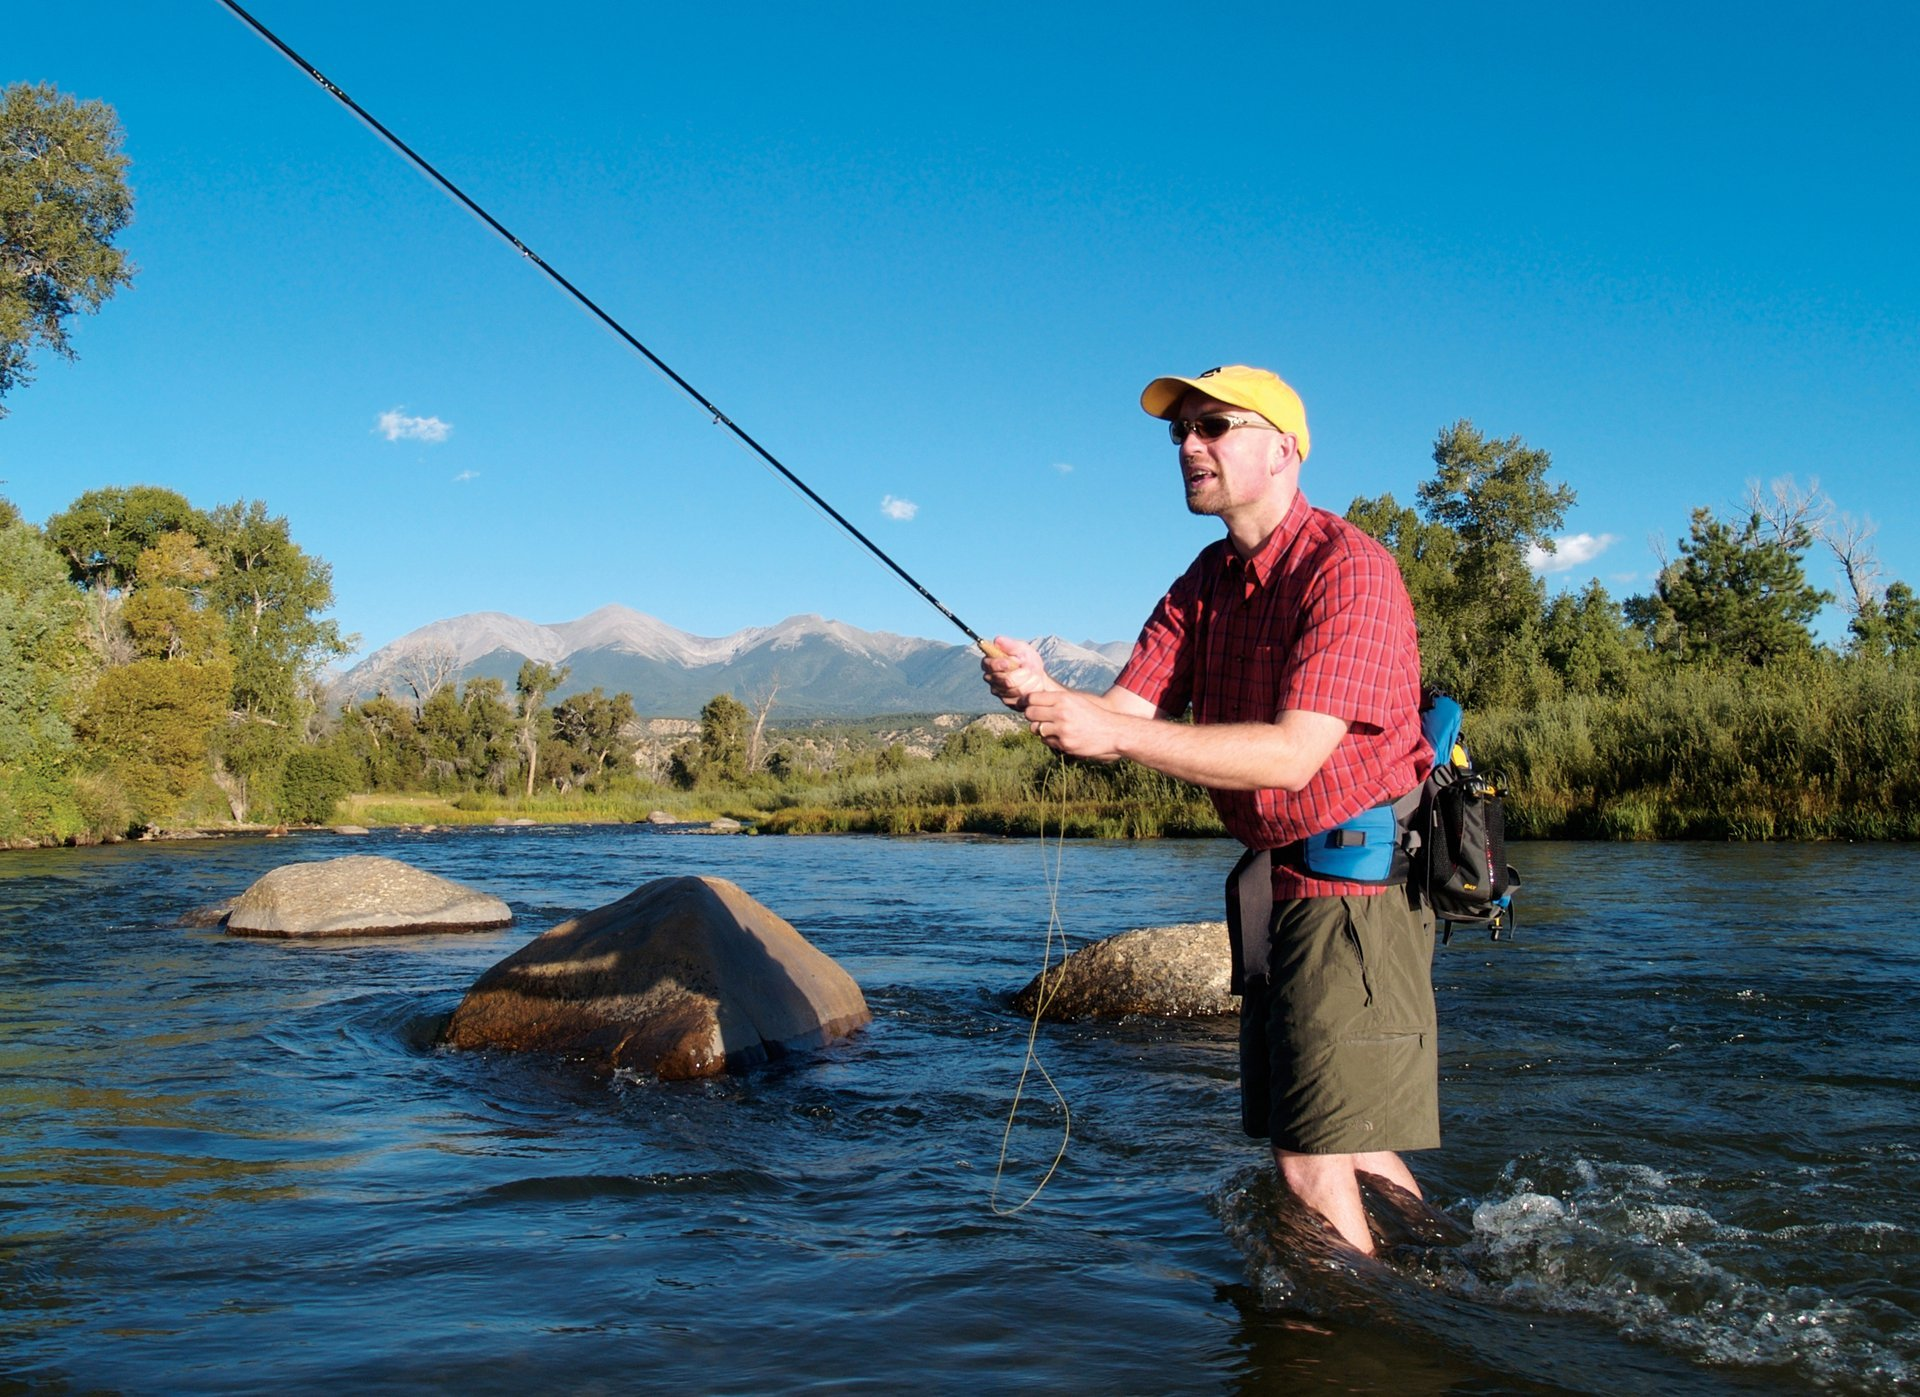 A fisherman throws in some lines in the Arkansas River near Salida, Colorado. 2020